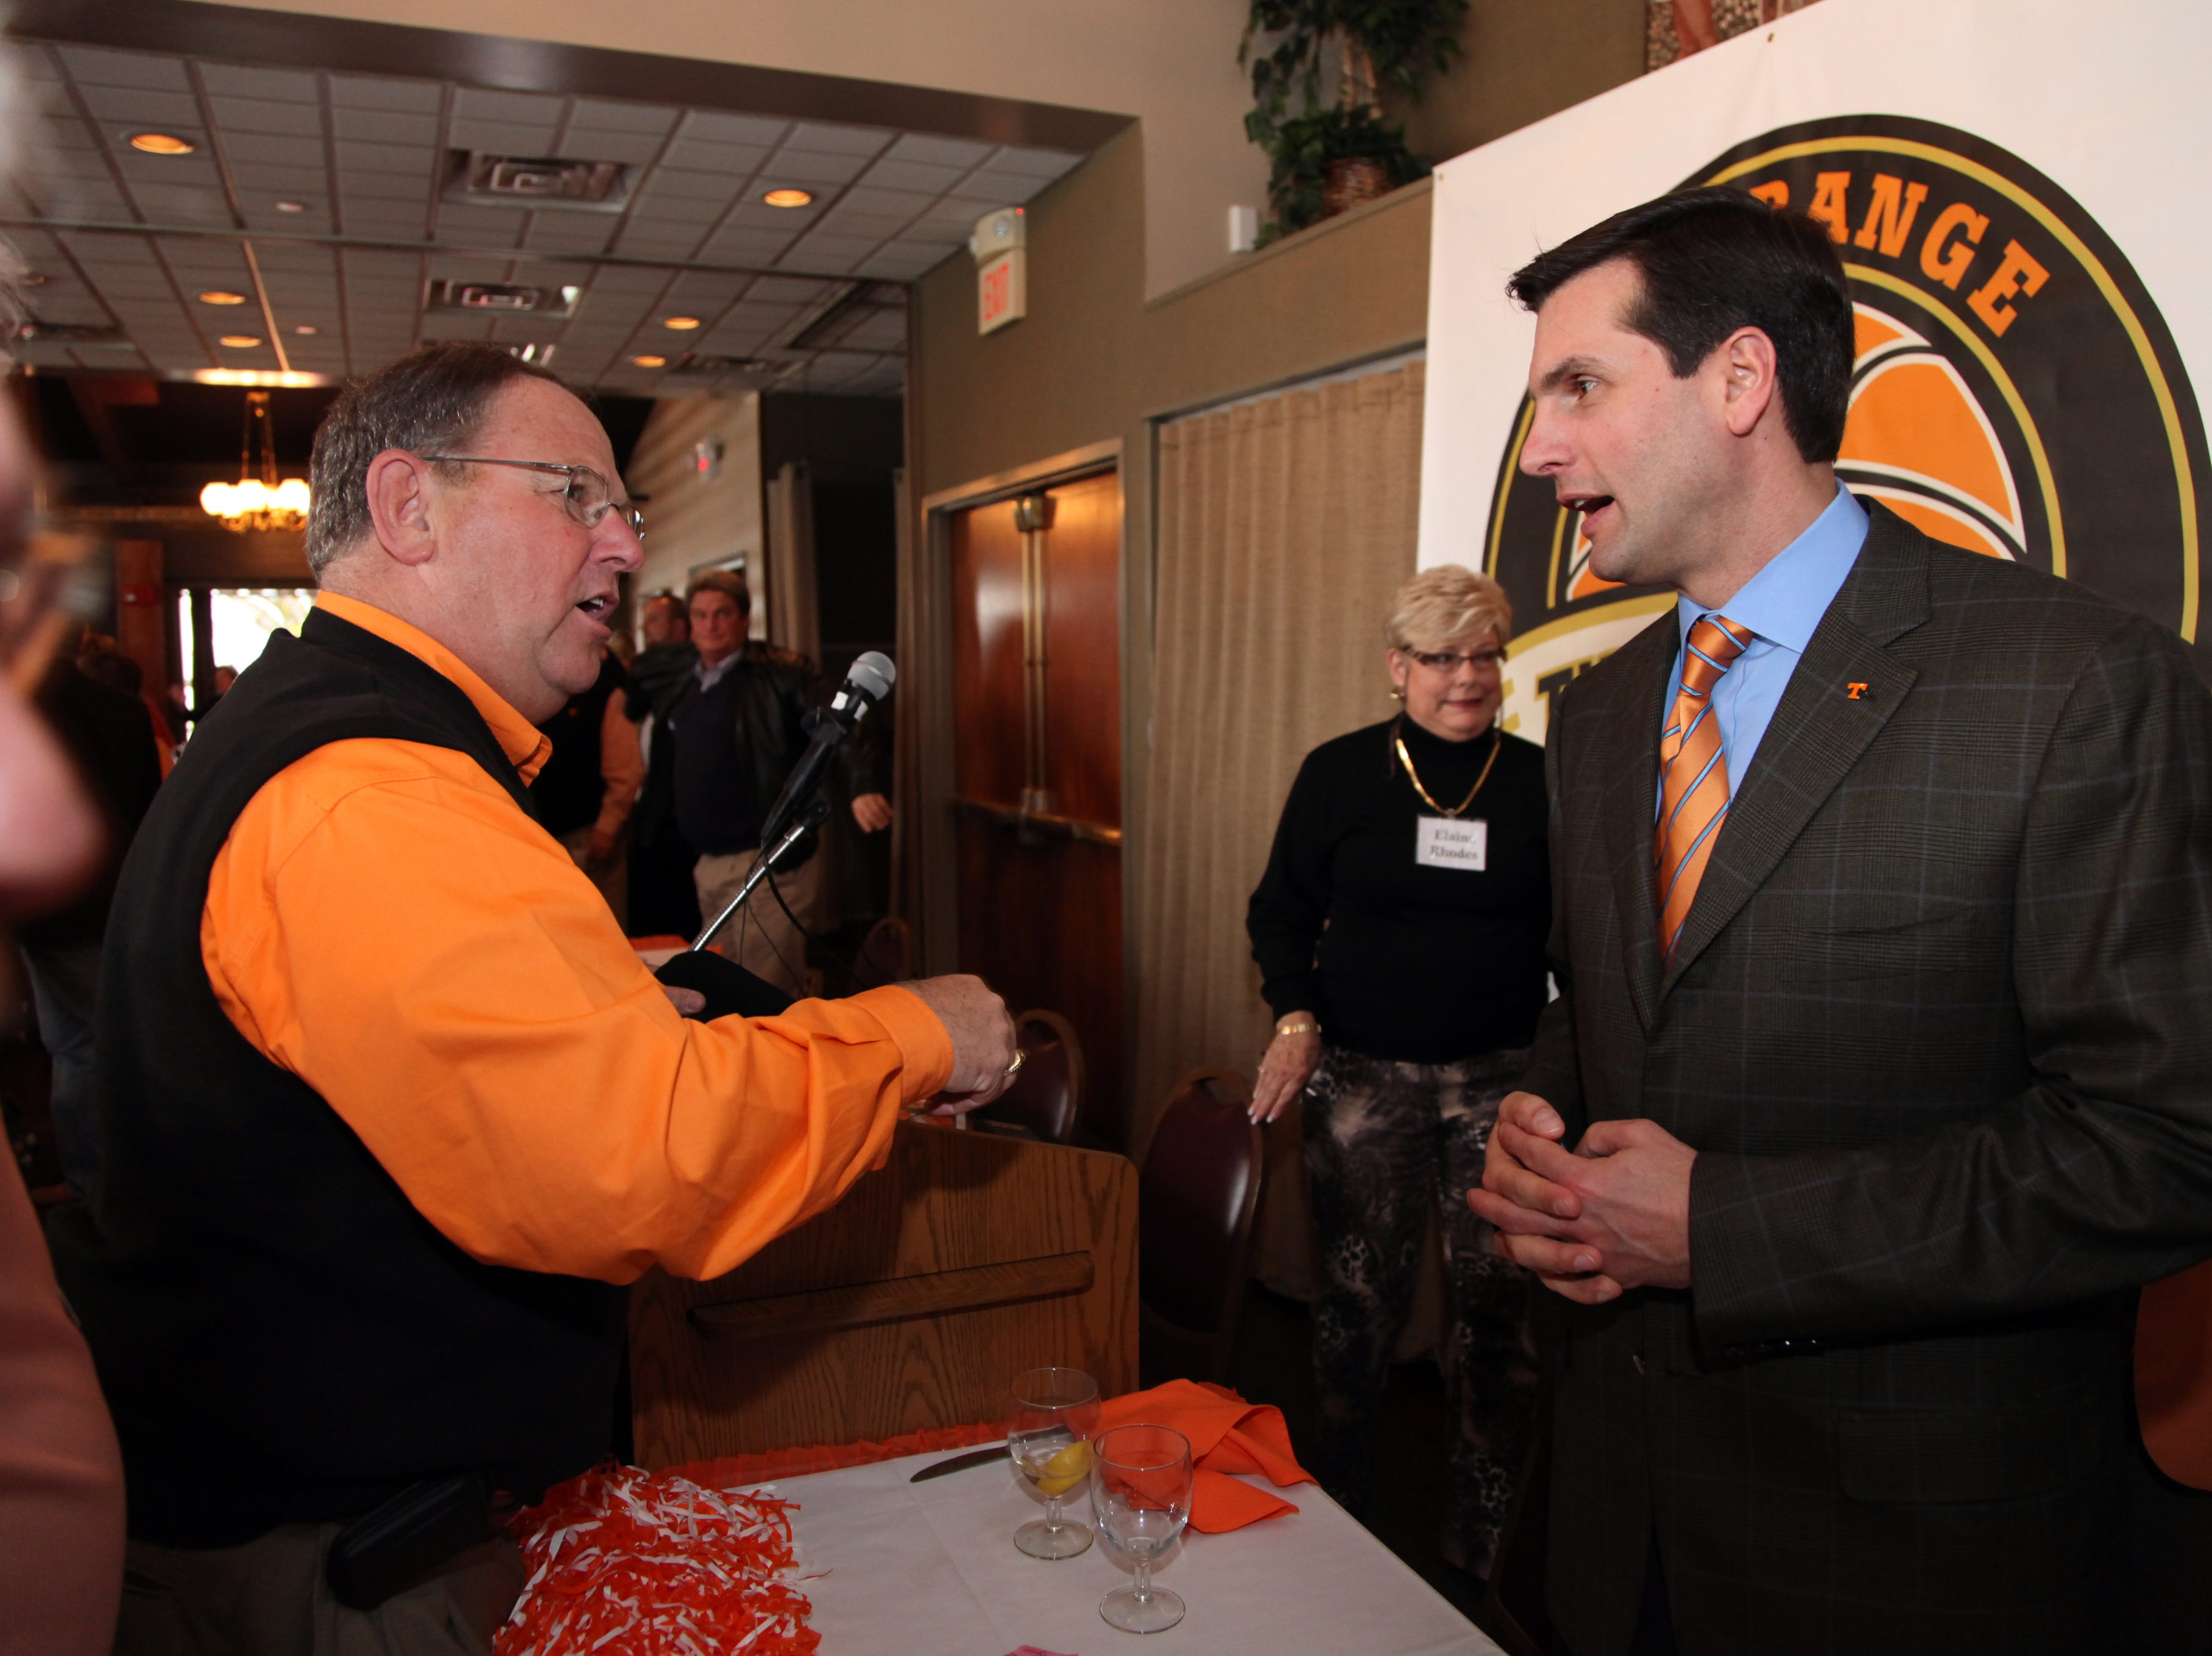 Steve West, left, talks with Tennessee football coach Derek Dooley after Dooley's speech at the Big Orange Tip-off Club Wednesday, Feb. 24, 2010 at Calhoun's on the River.